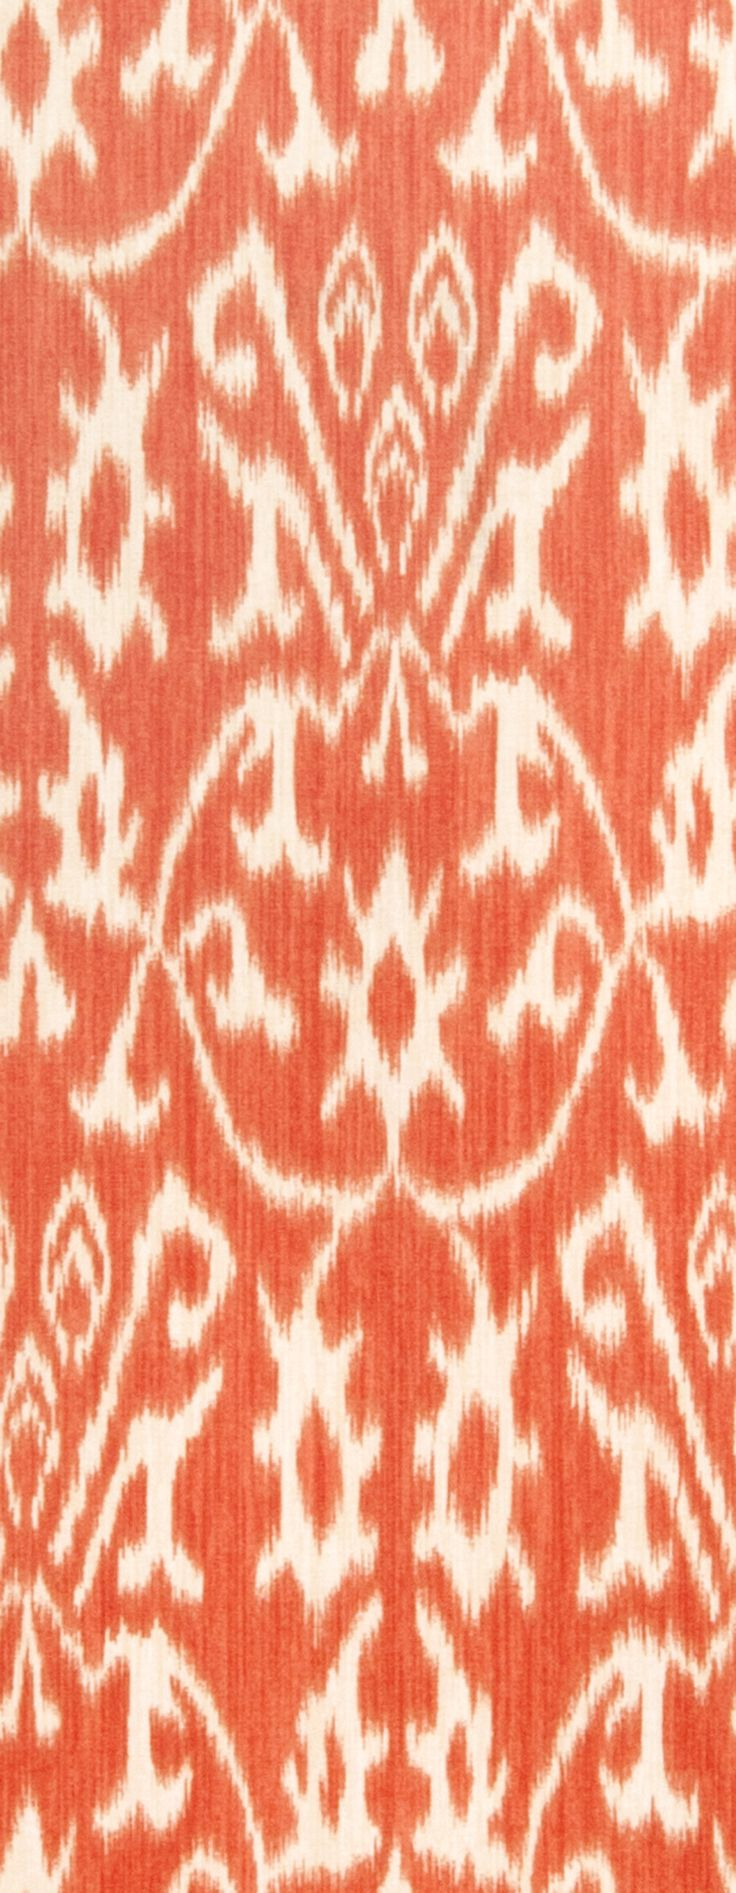 Ikat pattern drapery fabric discount ikat pattern - Find This Pin And More On Fabrics Textiles Quilts Coral Ikat